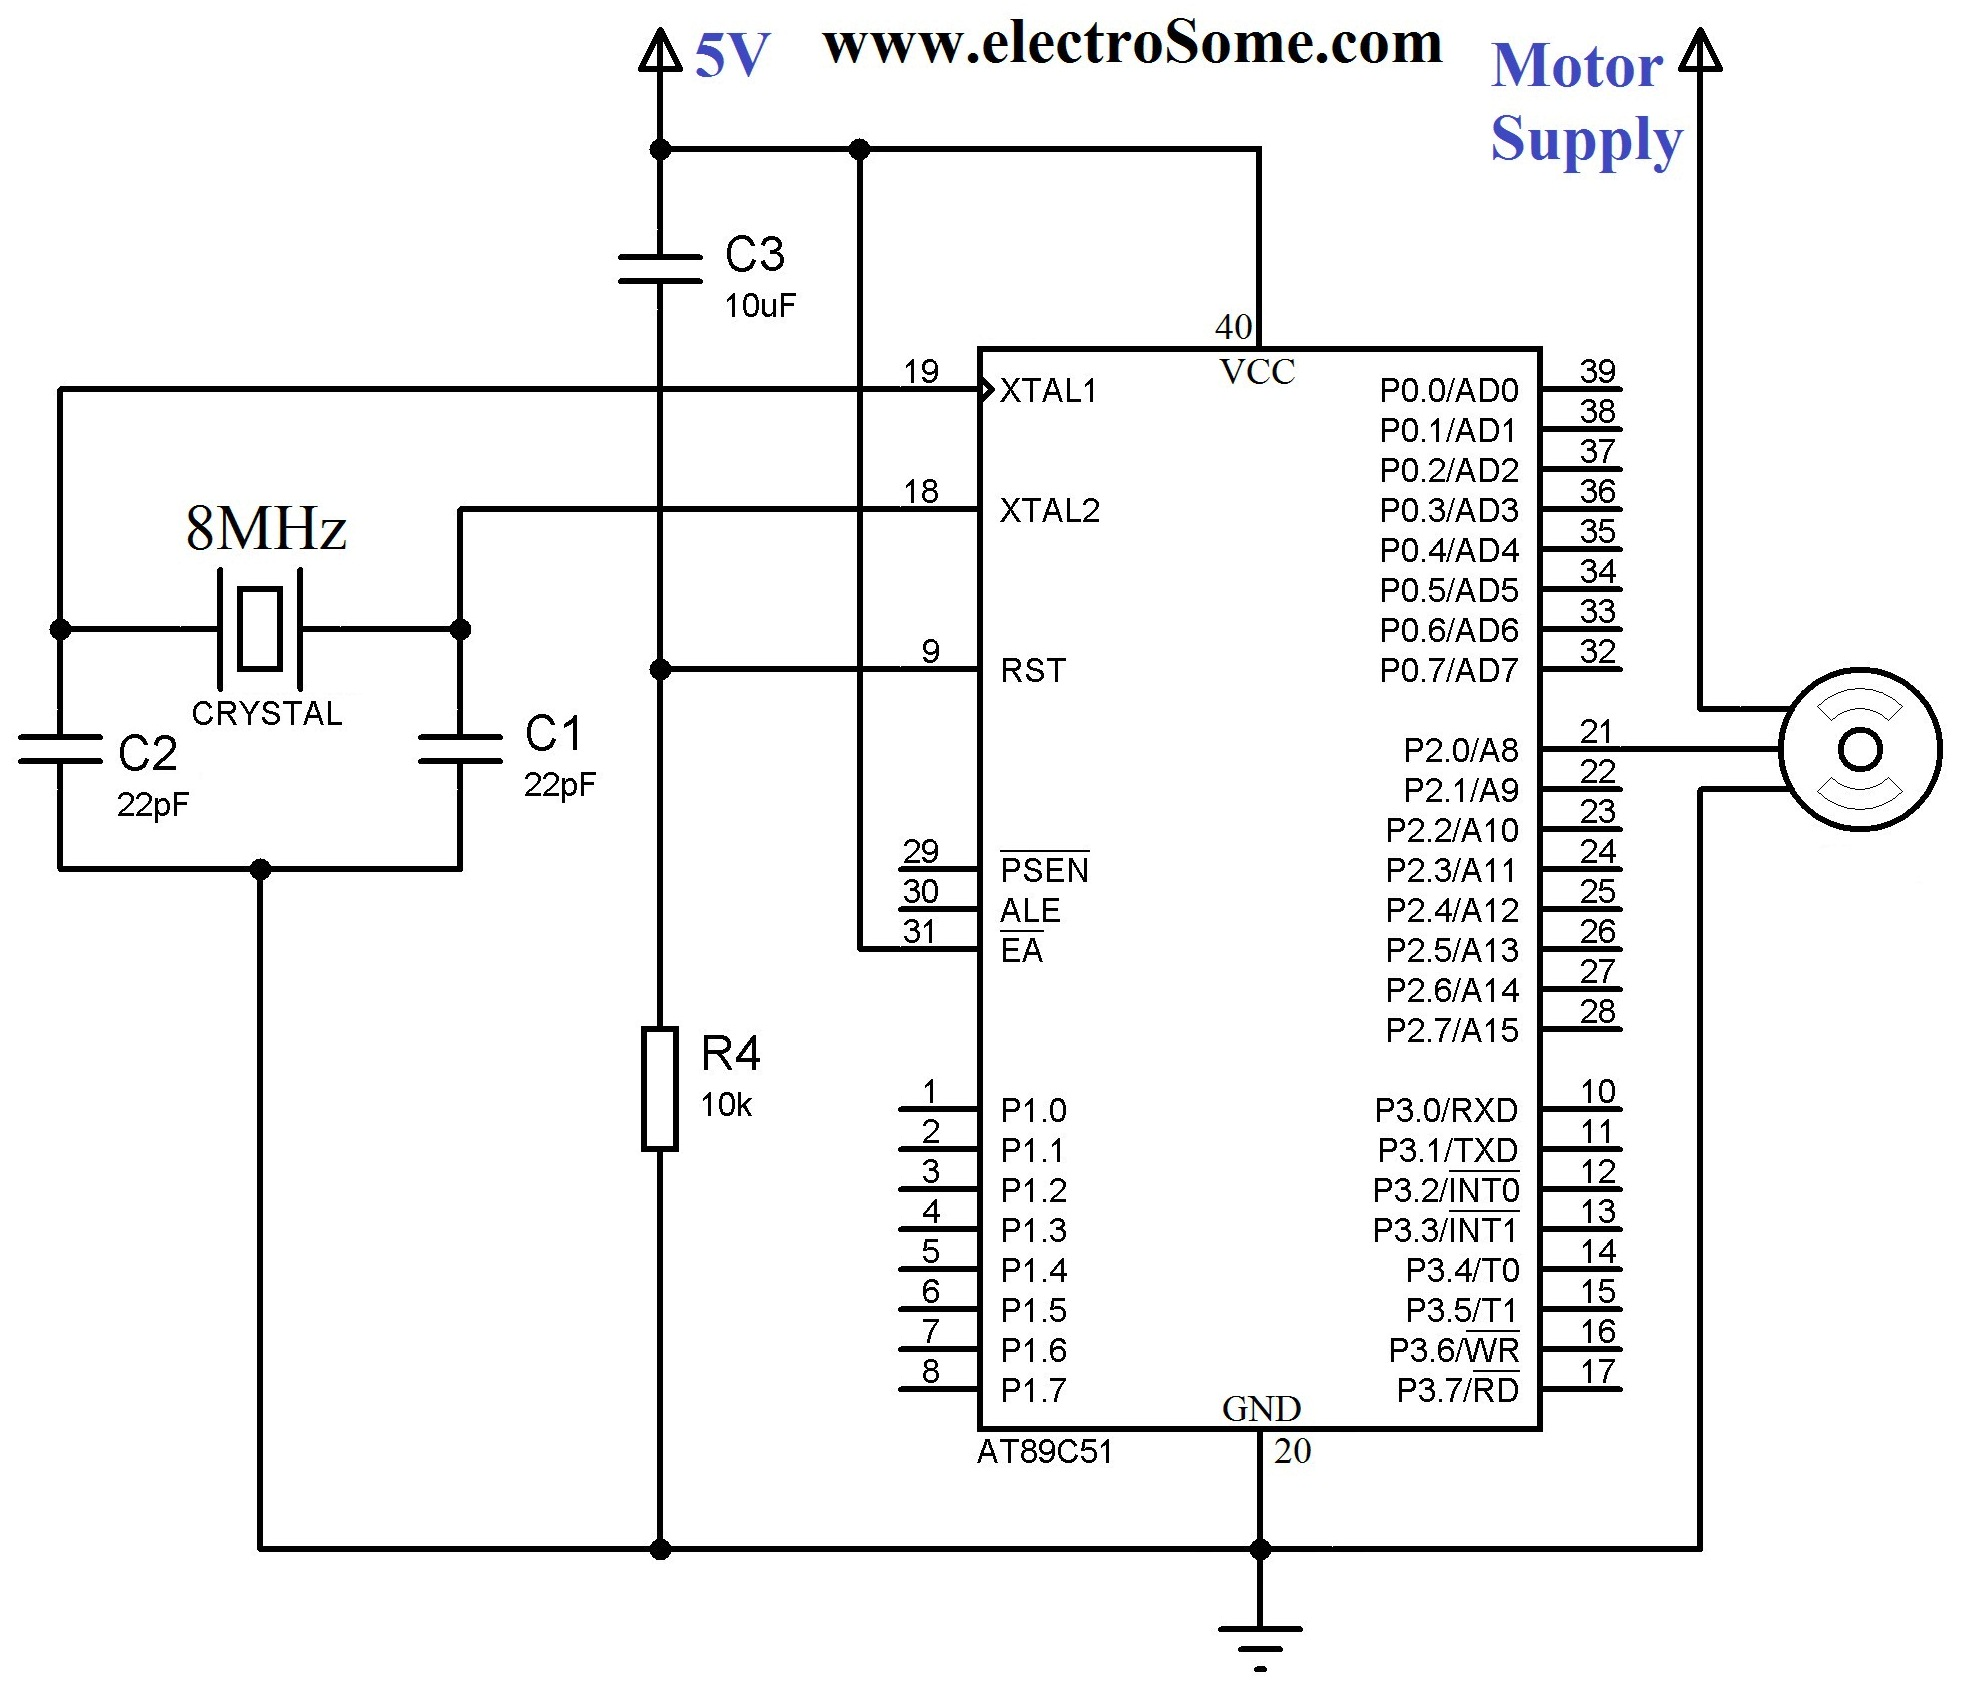 hight resolution of potentiometer motor wiring diagram wiring libraryinterfacing servo motor with 8051 using keil c